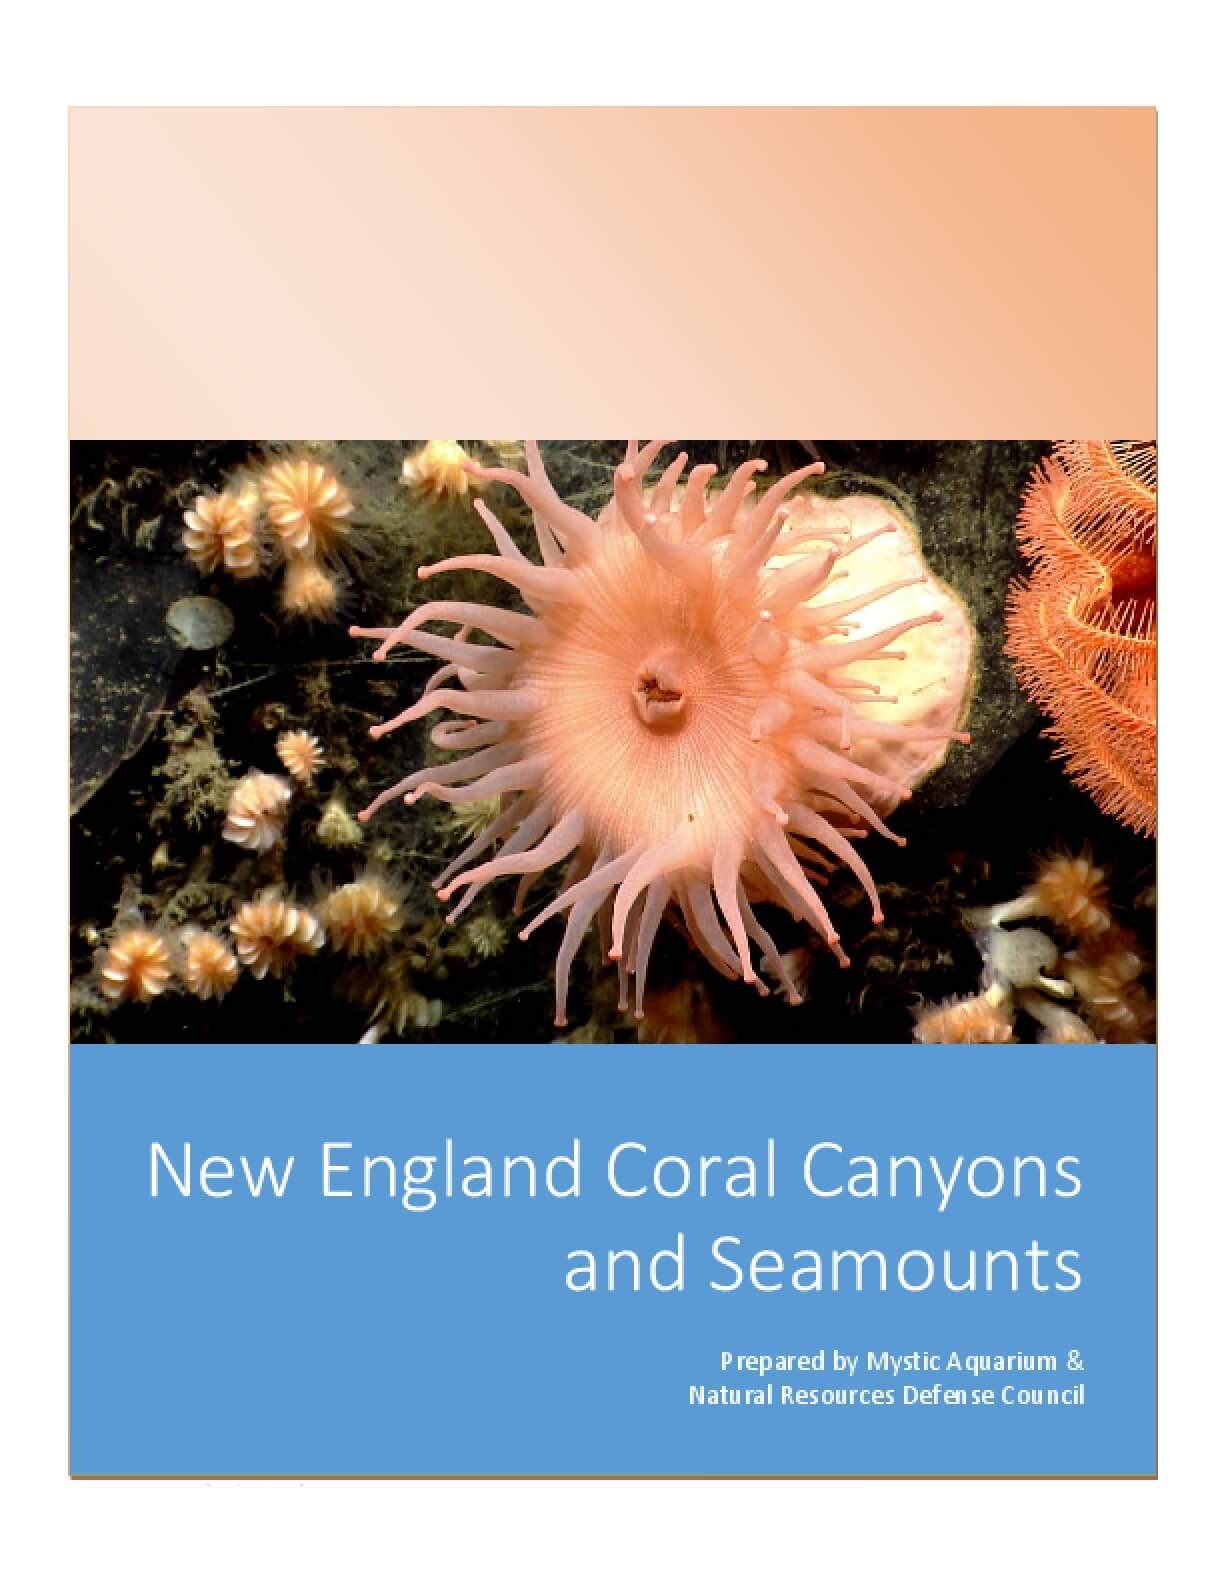 New England Coral Canyons and Seamounts